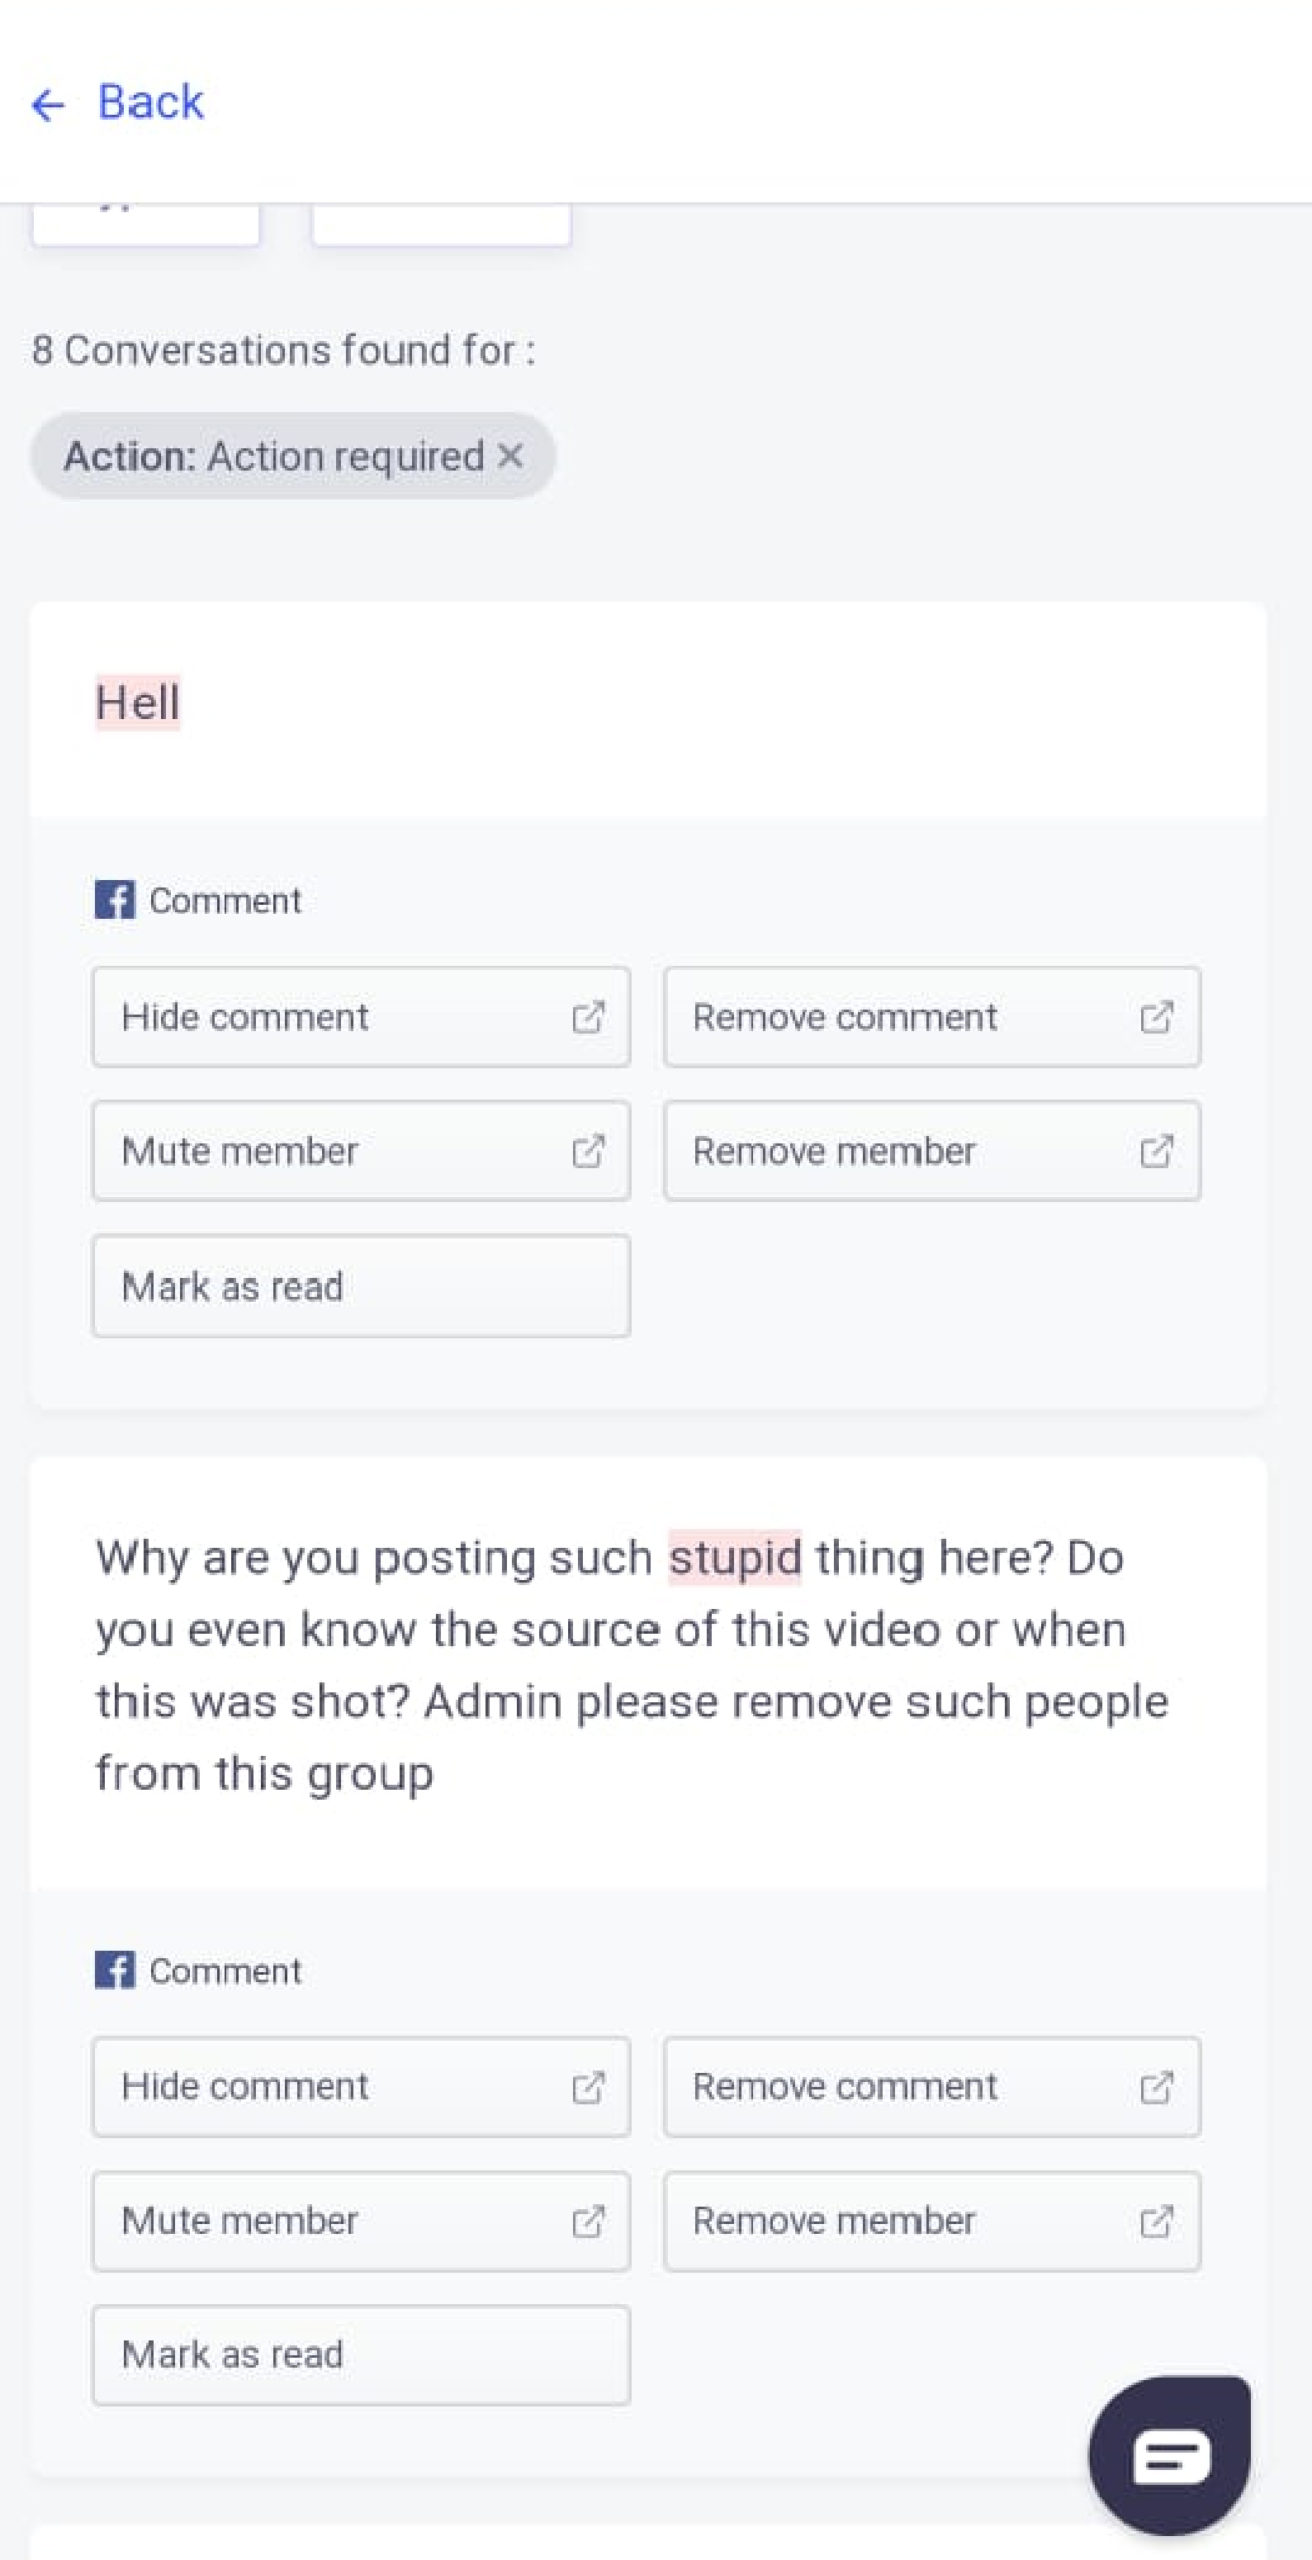 How to remove spam from gb group